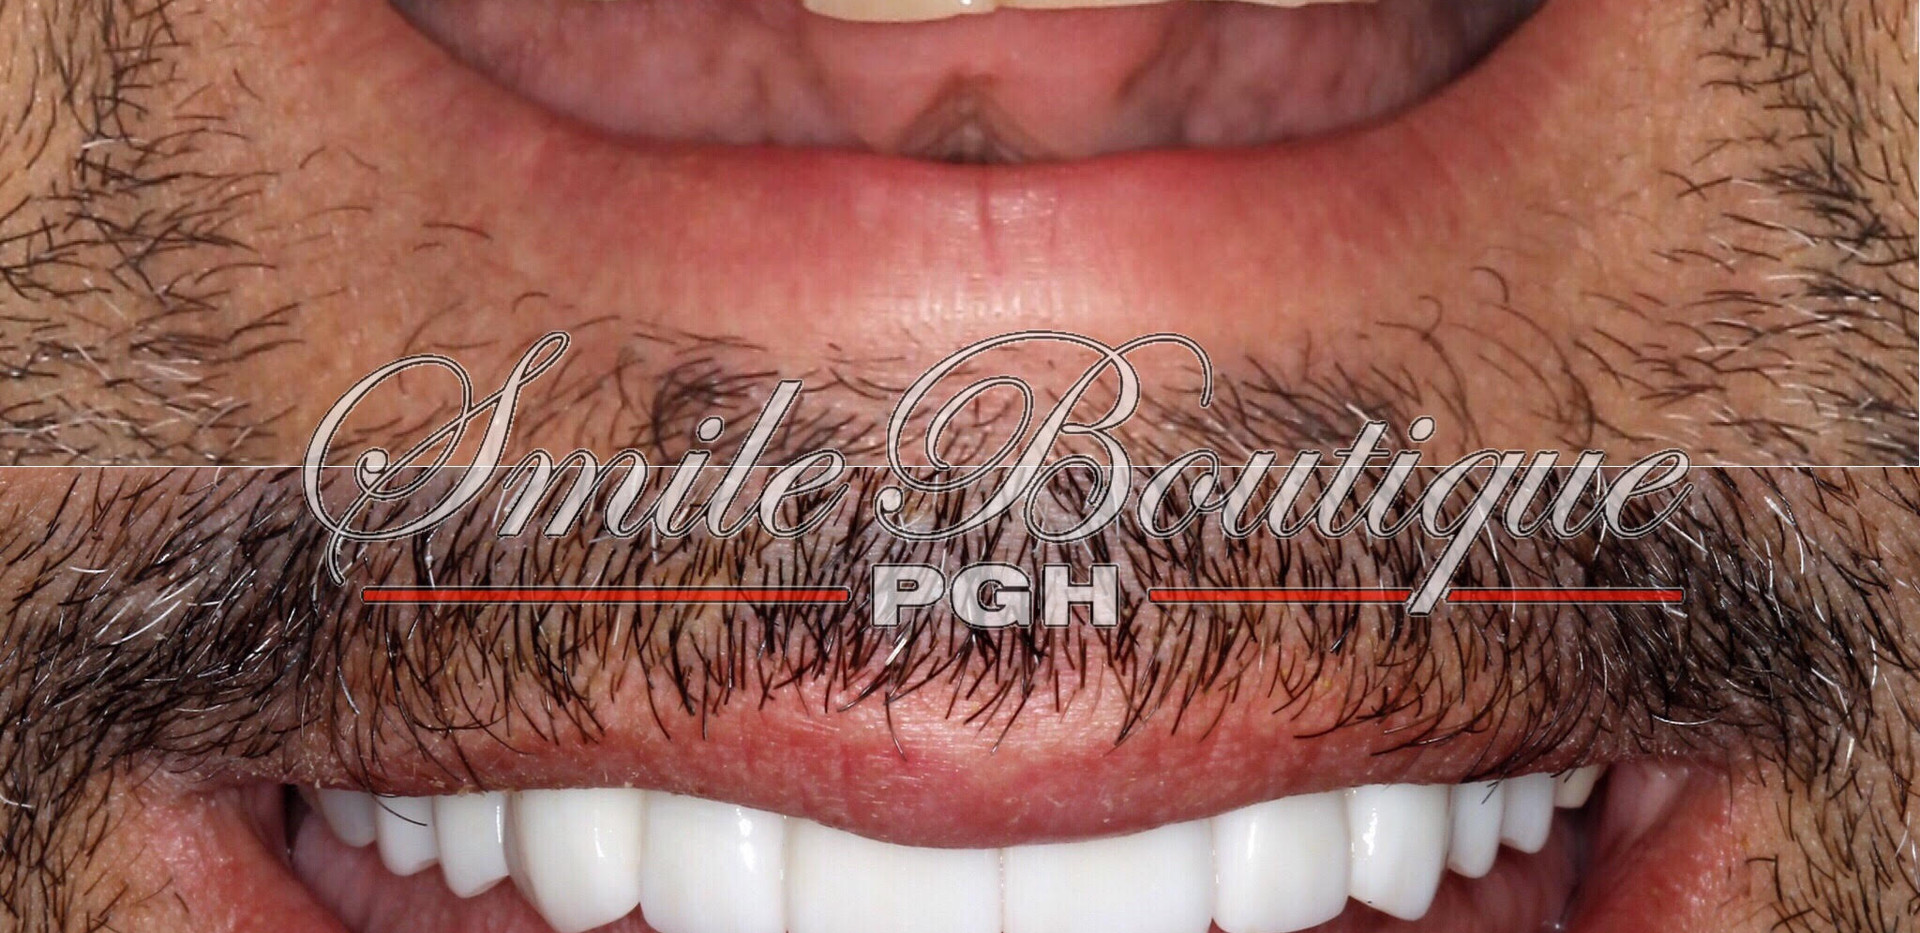 Veneers and Bridges